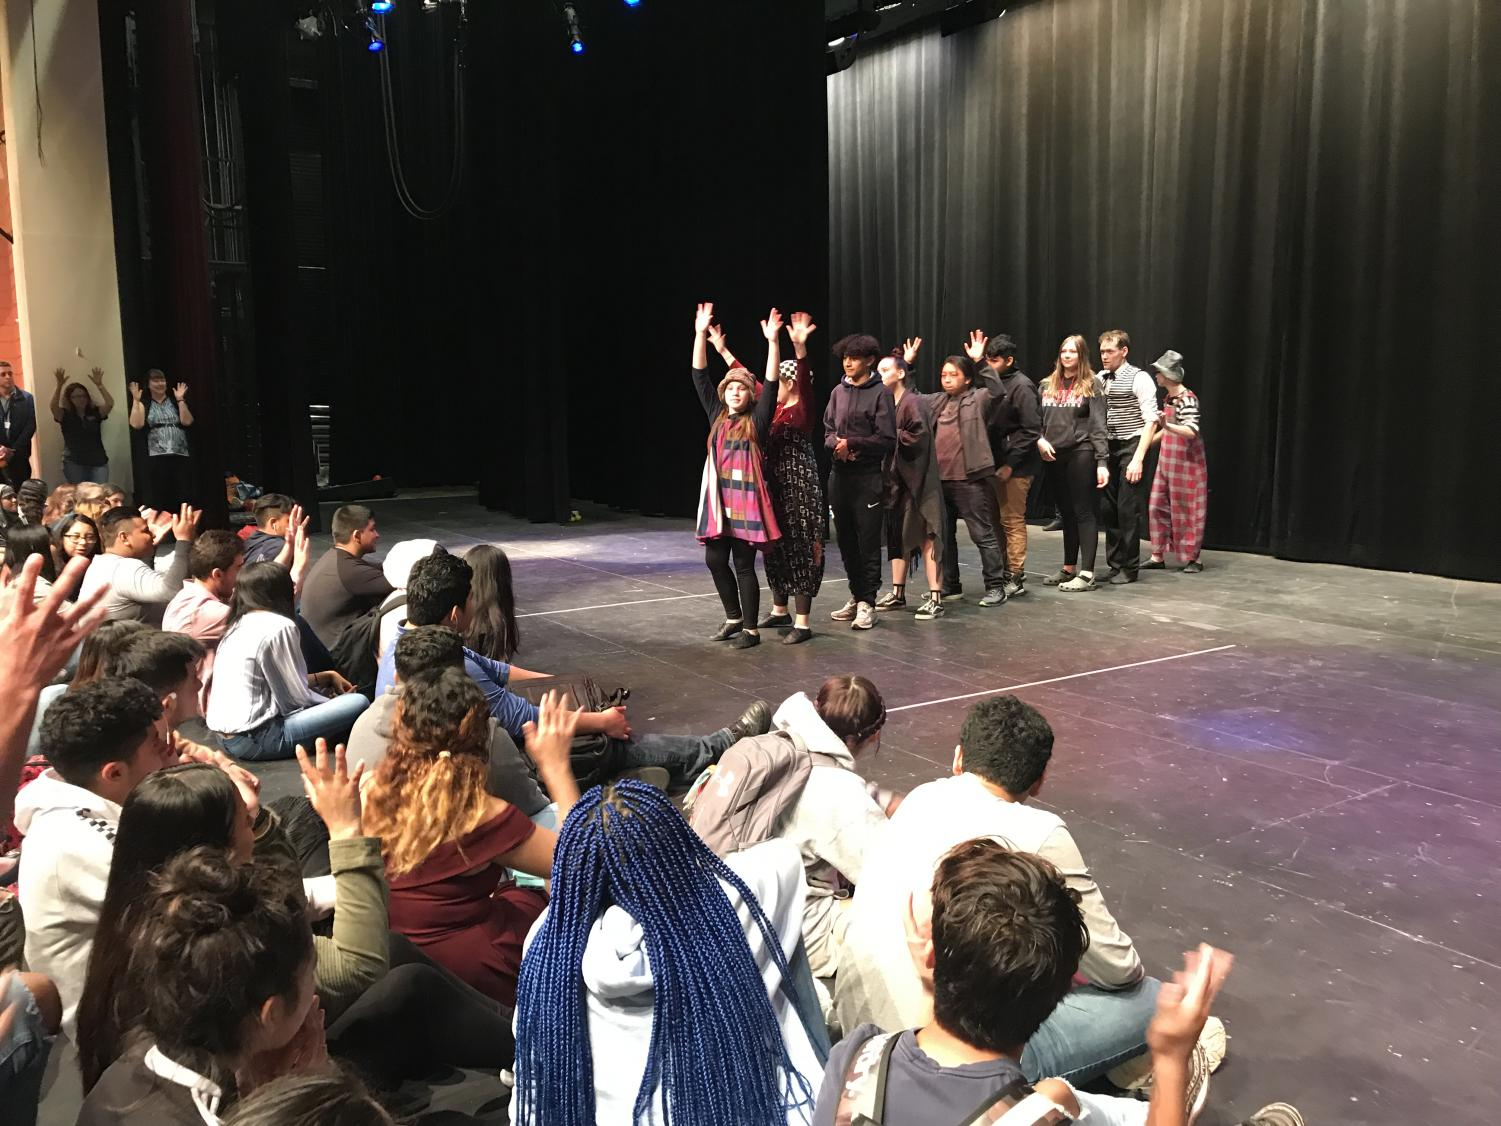 ESOL and American Sign Language students were invited to watch the Piano Theatre students from Russia perform. Some of the students were even participating in the act.